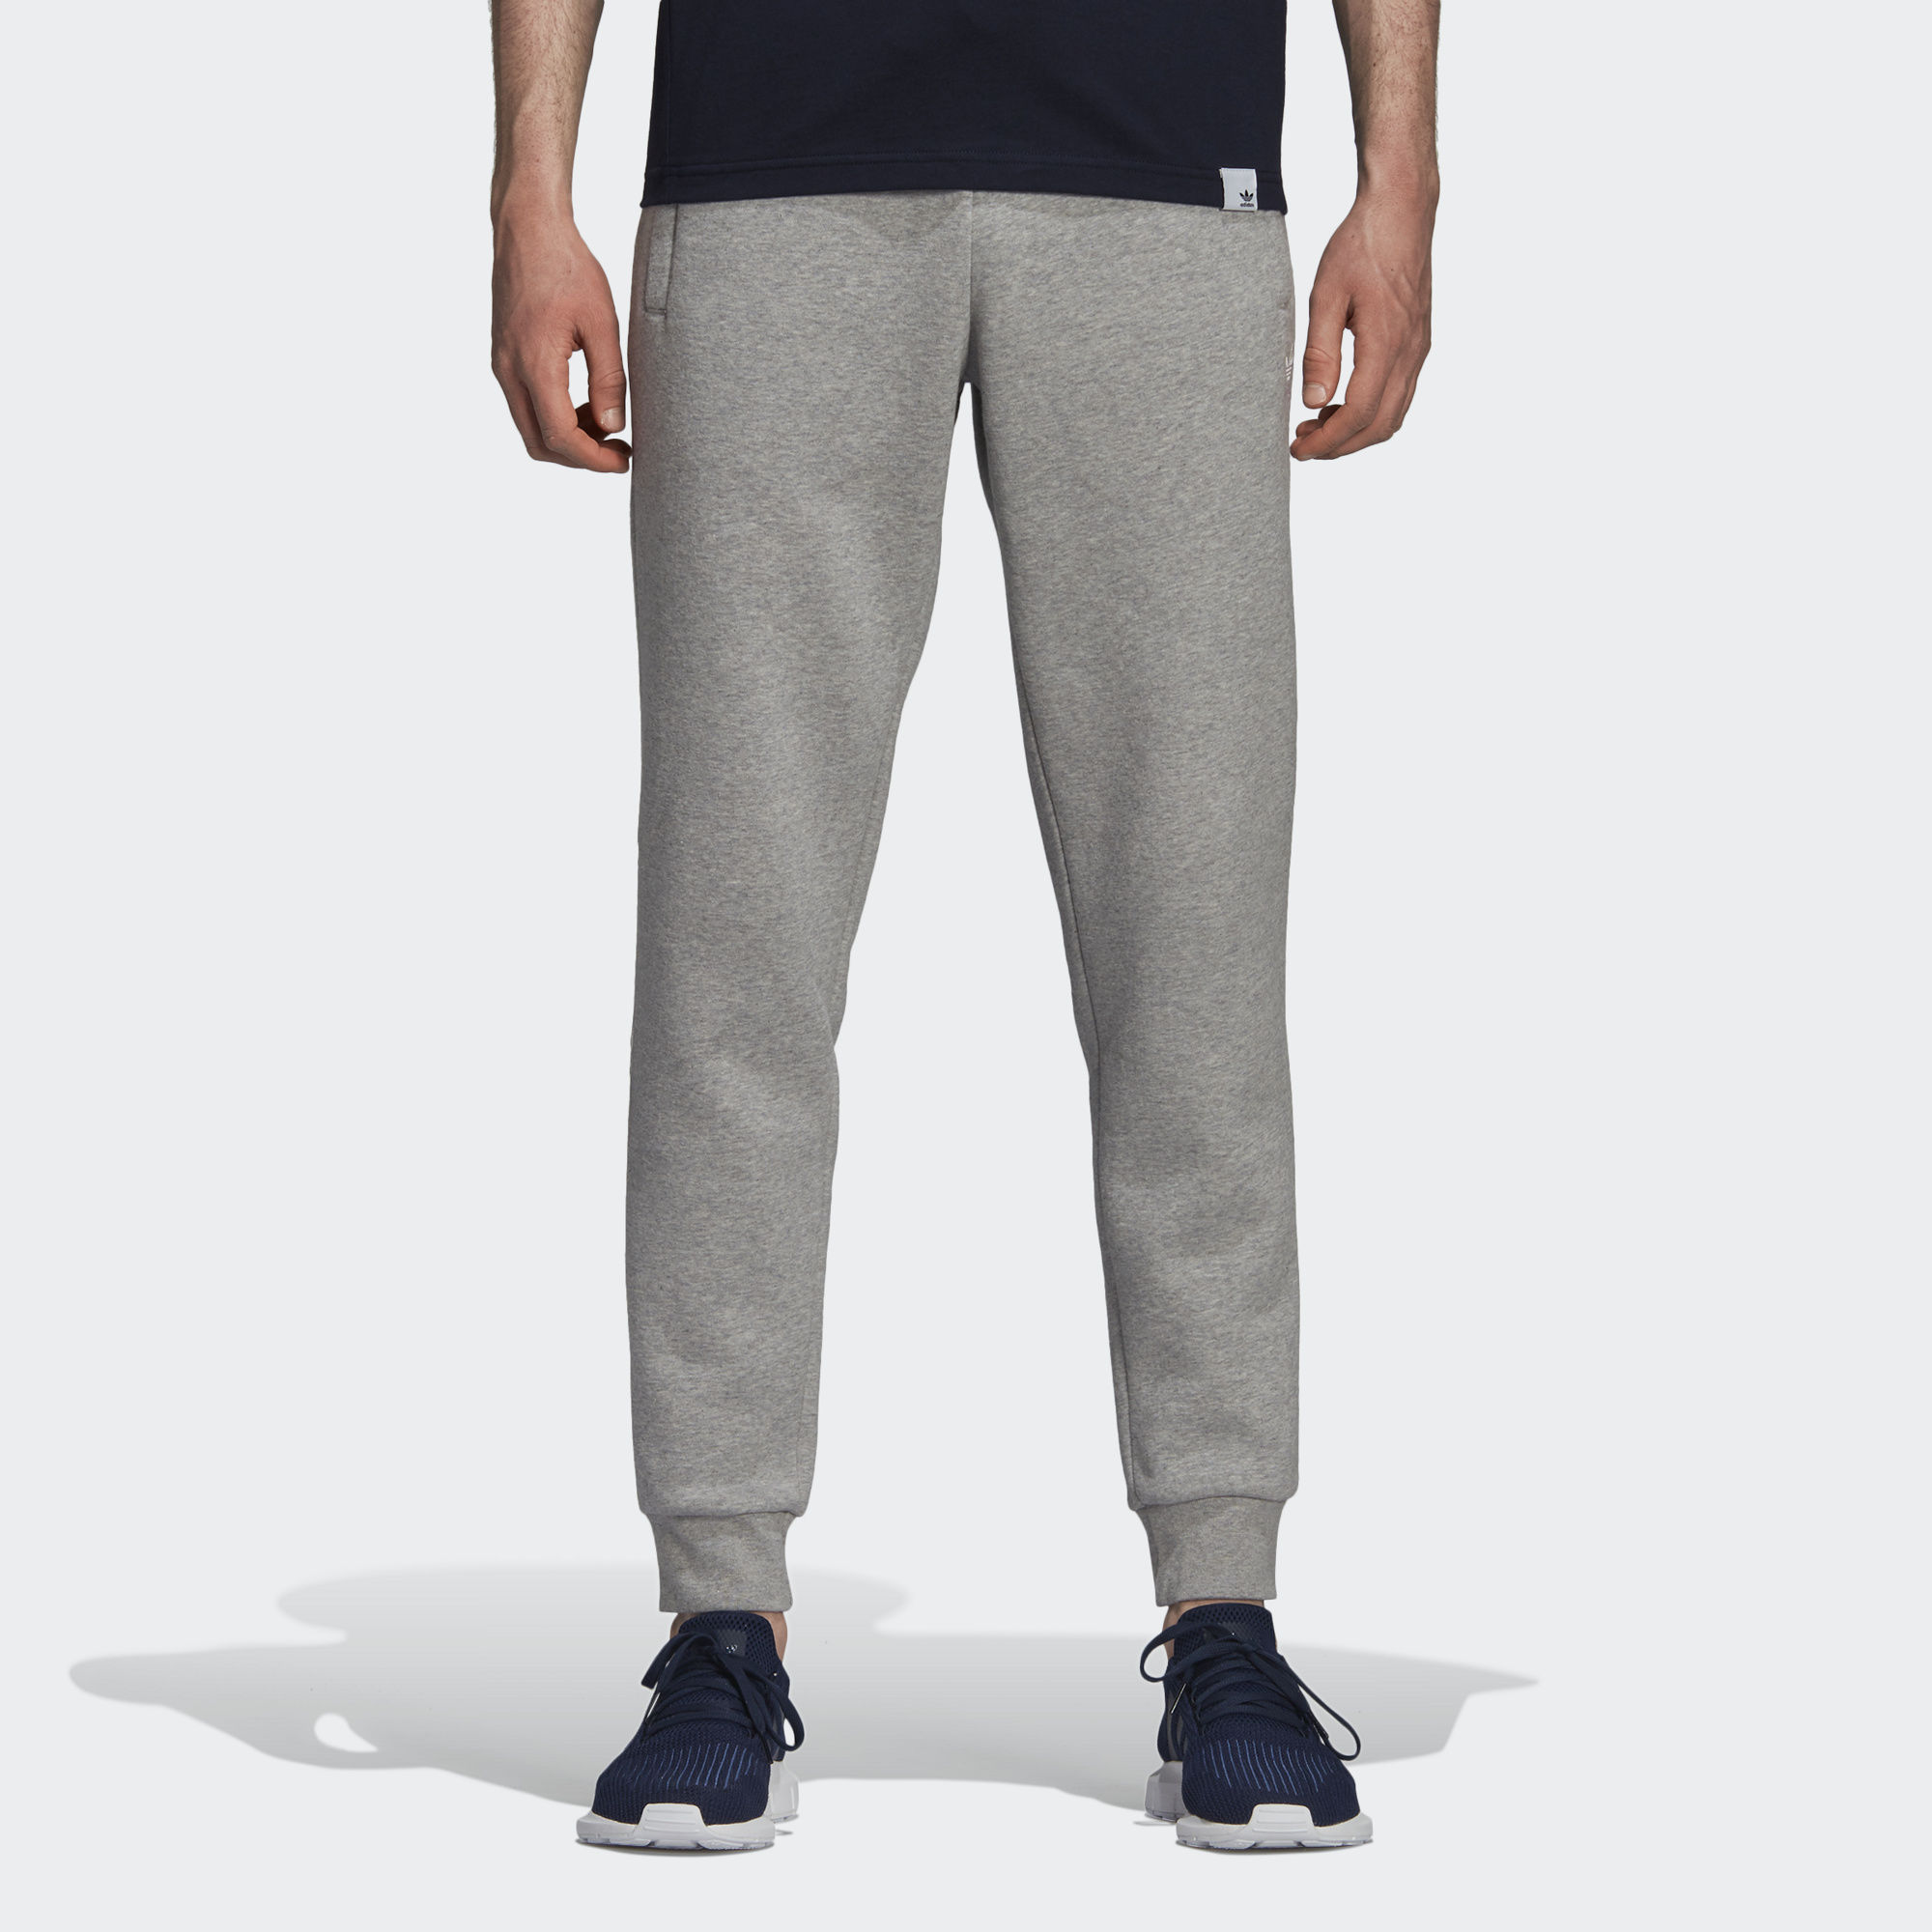 adidas Originals Fleece Slim Joggers - SPORTING GOODS Sports Pants -  Superfanas.lt 2ac1bac5246